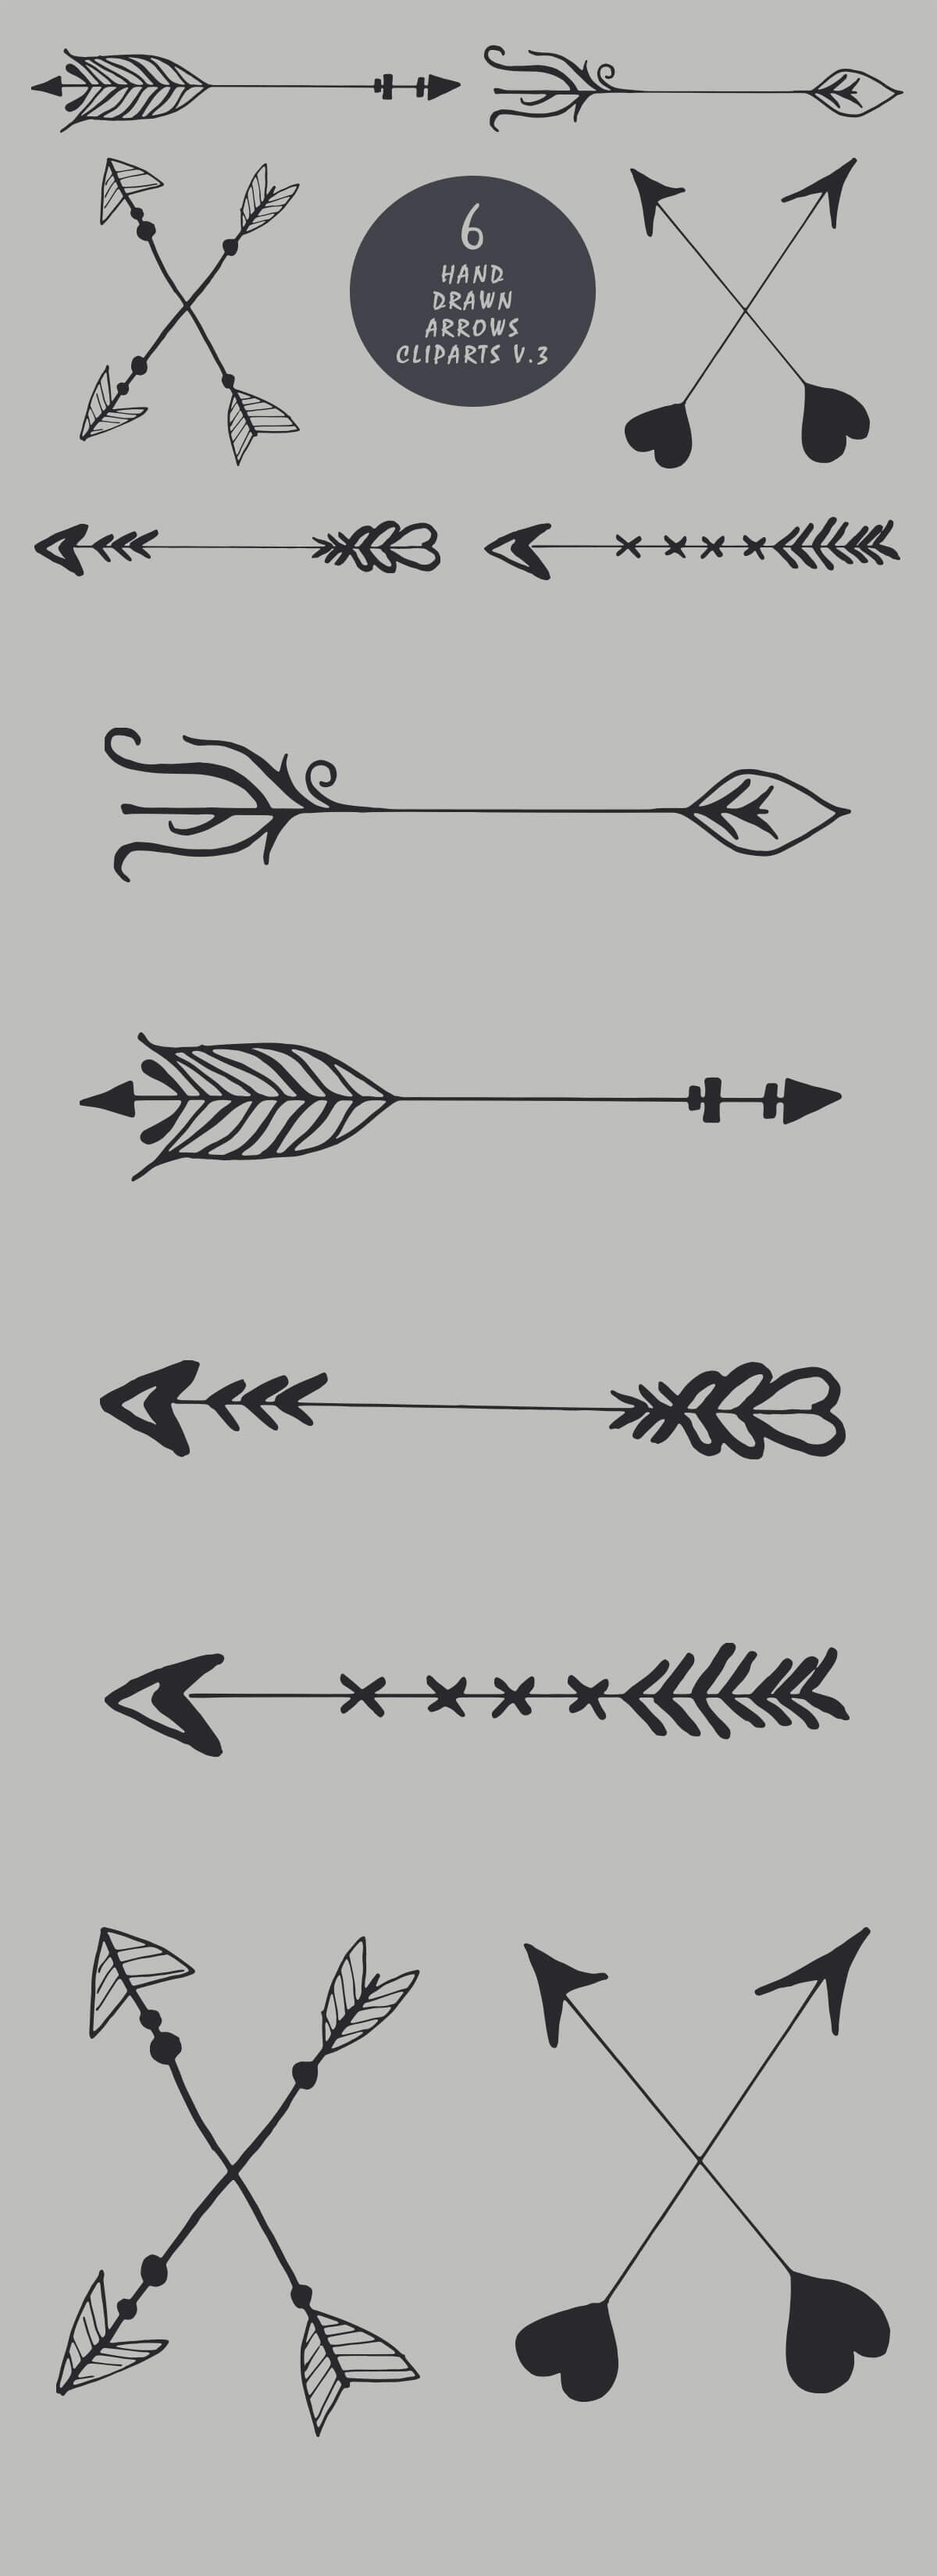 Free Handmade Arrows Cliparts V3